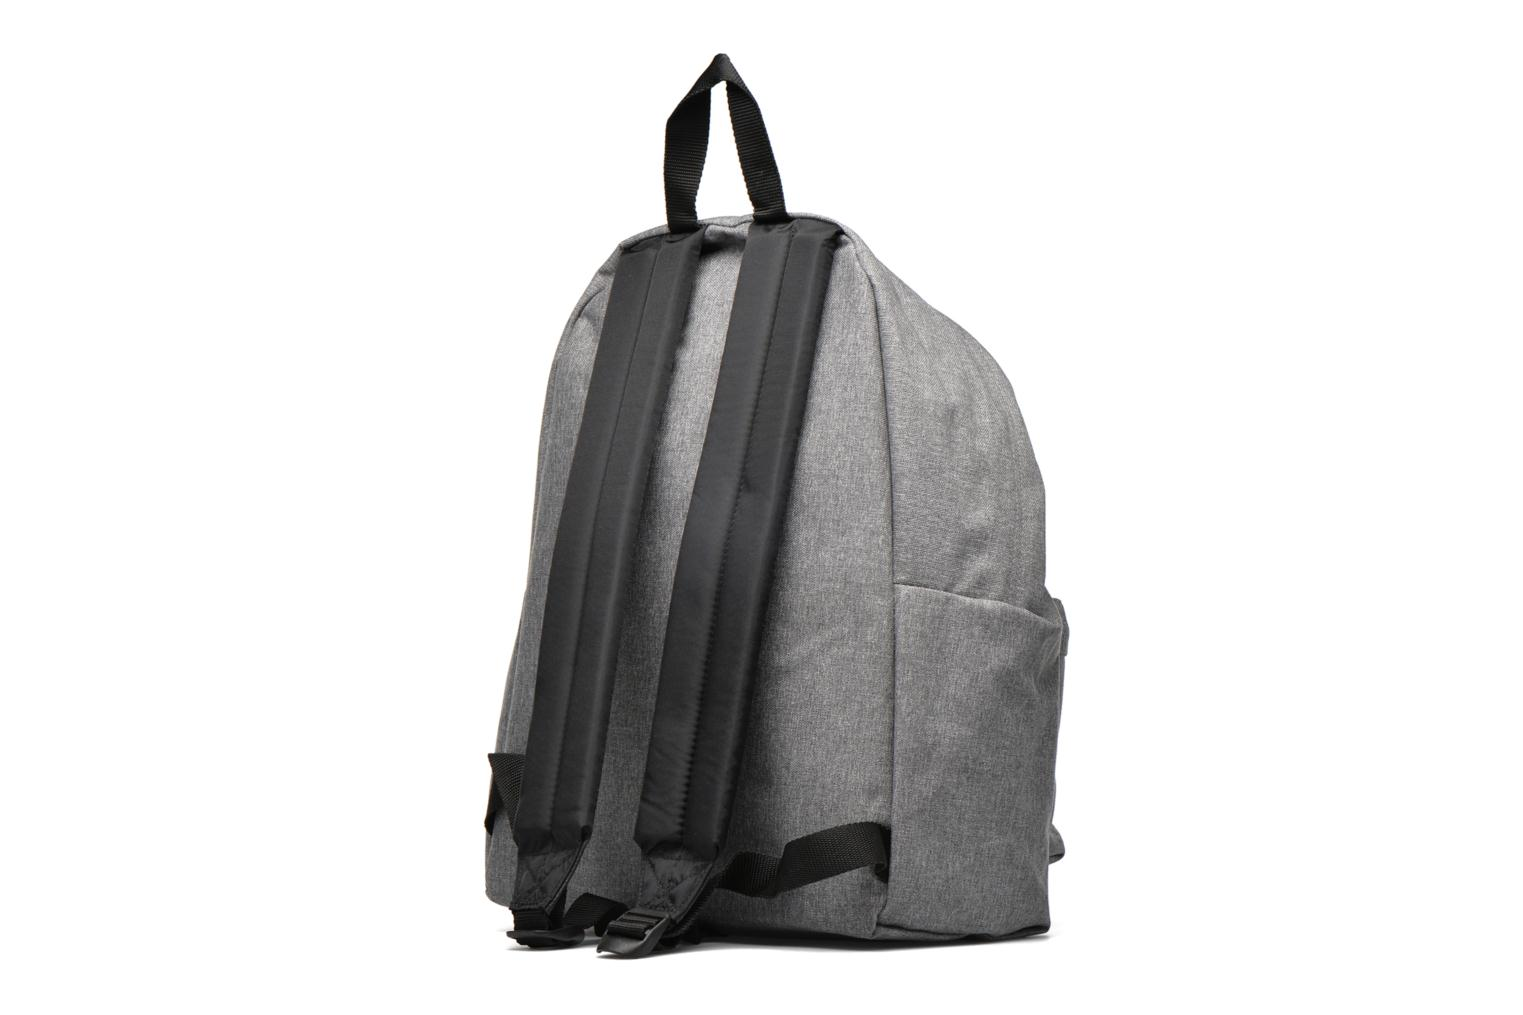 toile Eastpak Sac PADDED à PACK'R Grey Sunday dos rUUXq4f